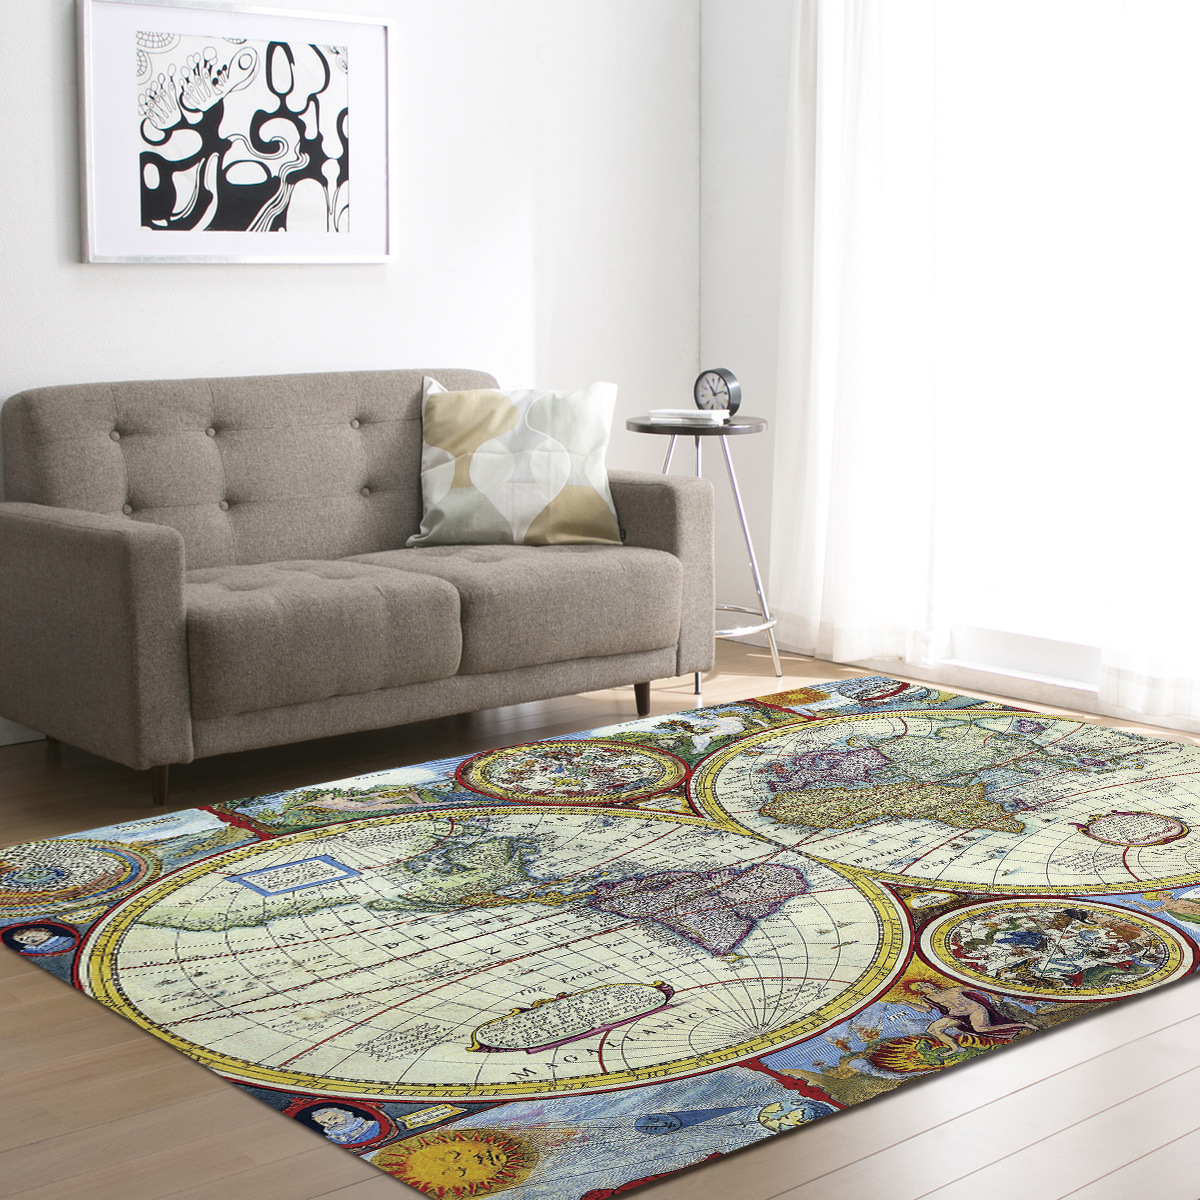 World Map Pattern Rugs And Carpets For Home Living Room Non slip Bedroom Large Area Rugs Washable Office Chair Sofa Floor Mats